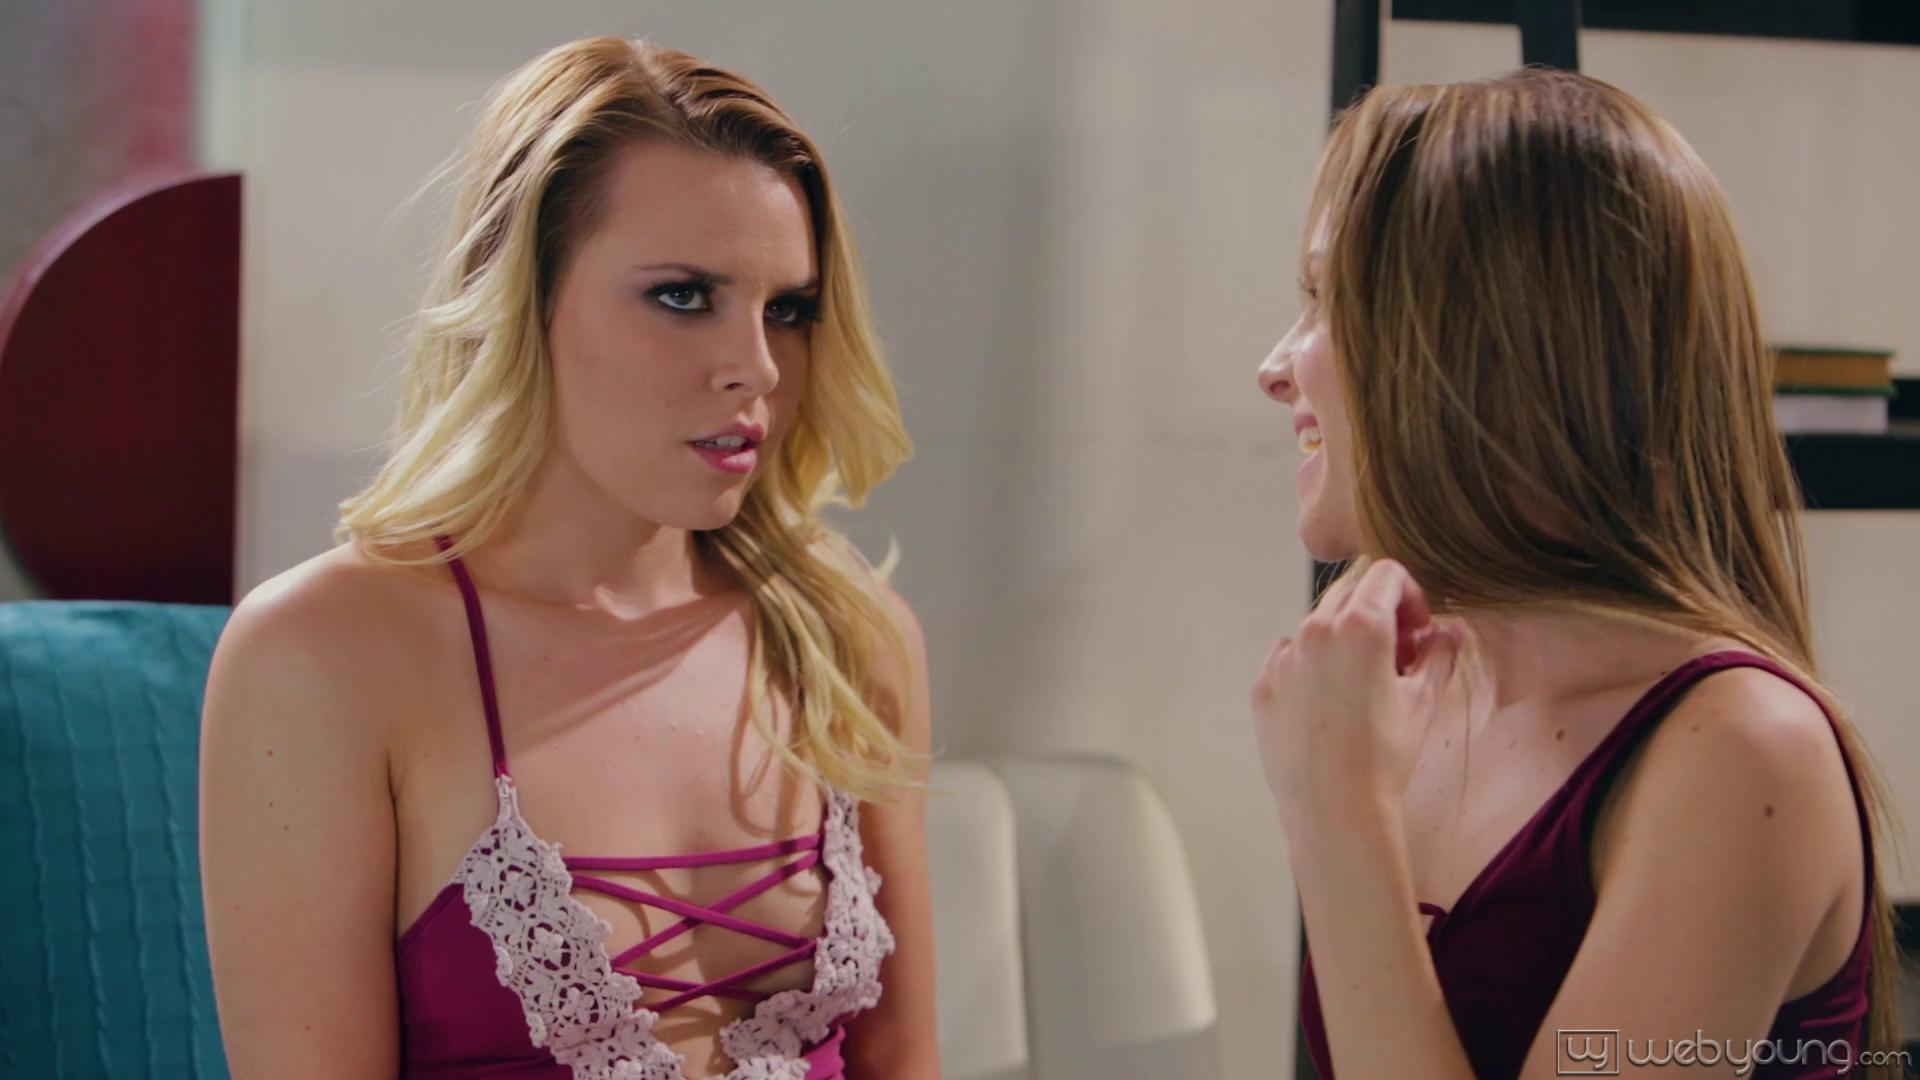 WebYoung – Kimmy Granger And Aubrey Sinclair Sometimes A Book Changes Everything